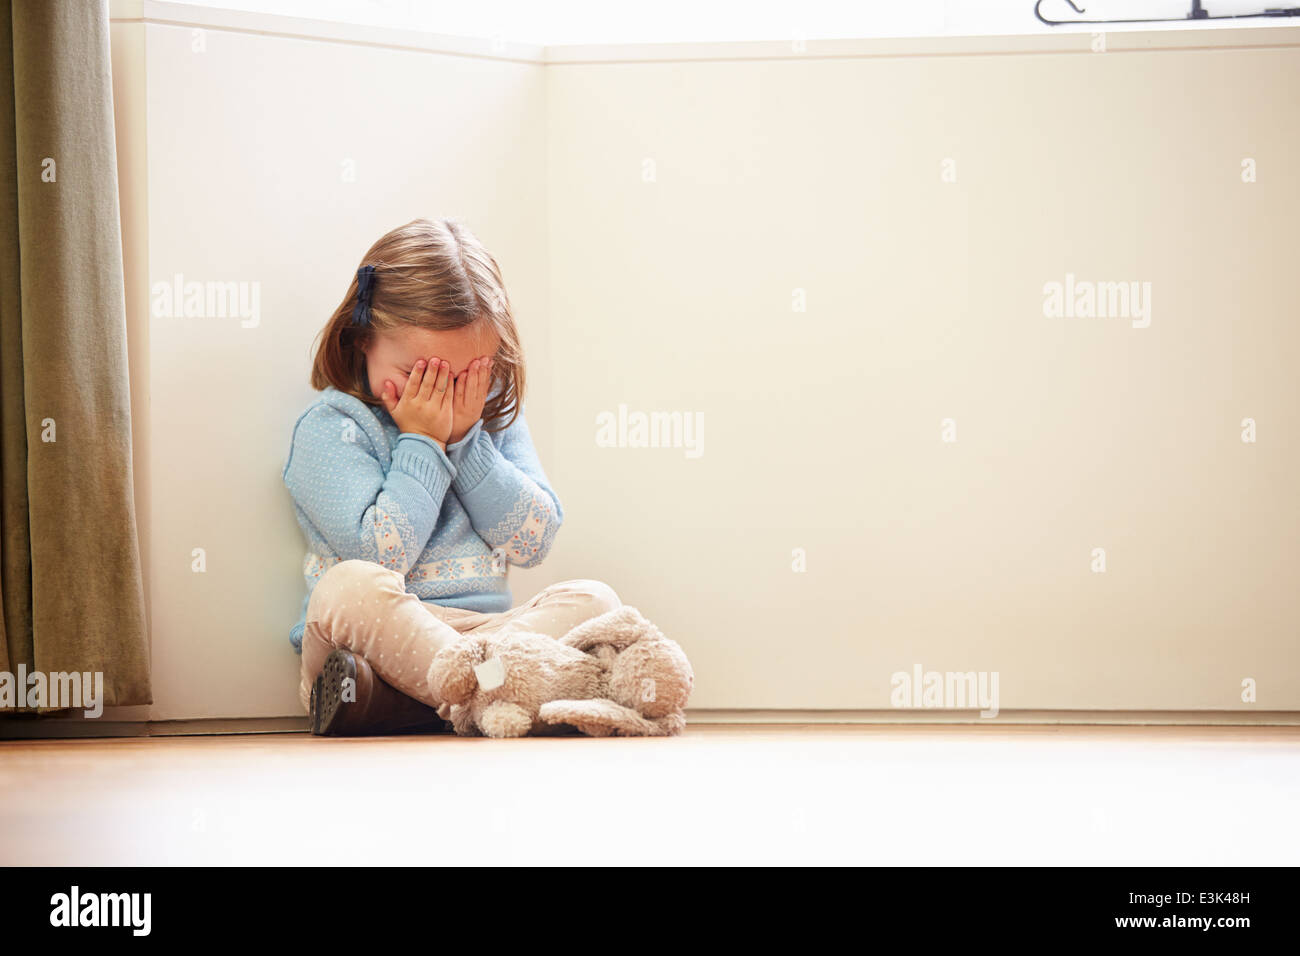 Unhappy Child Sitting On Floor In Corner At Home - Stock Image